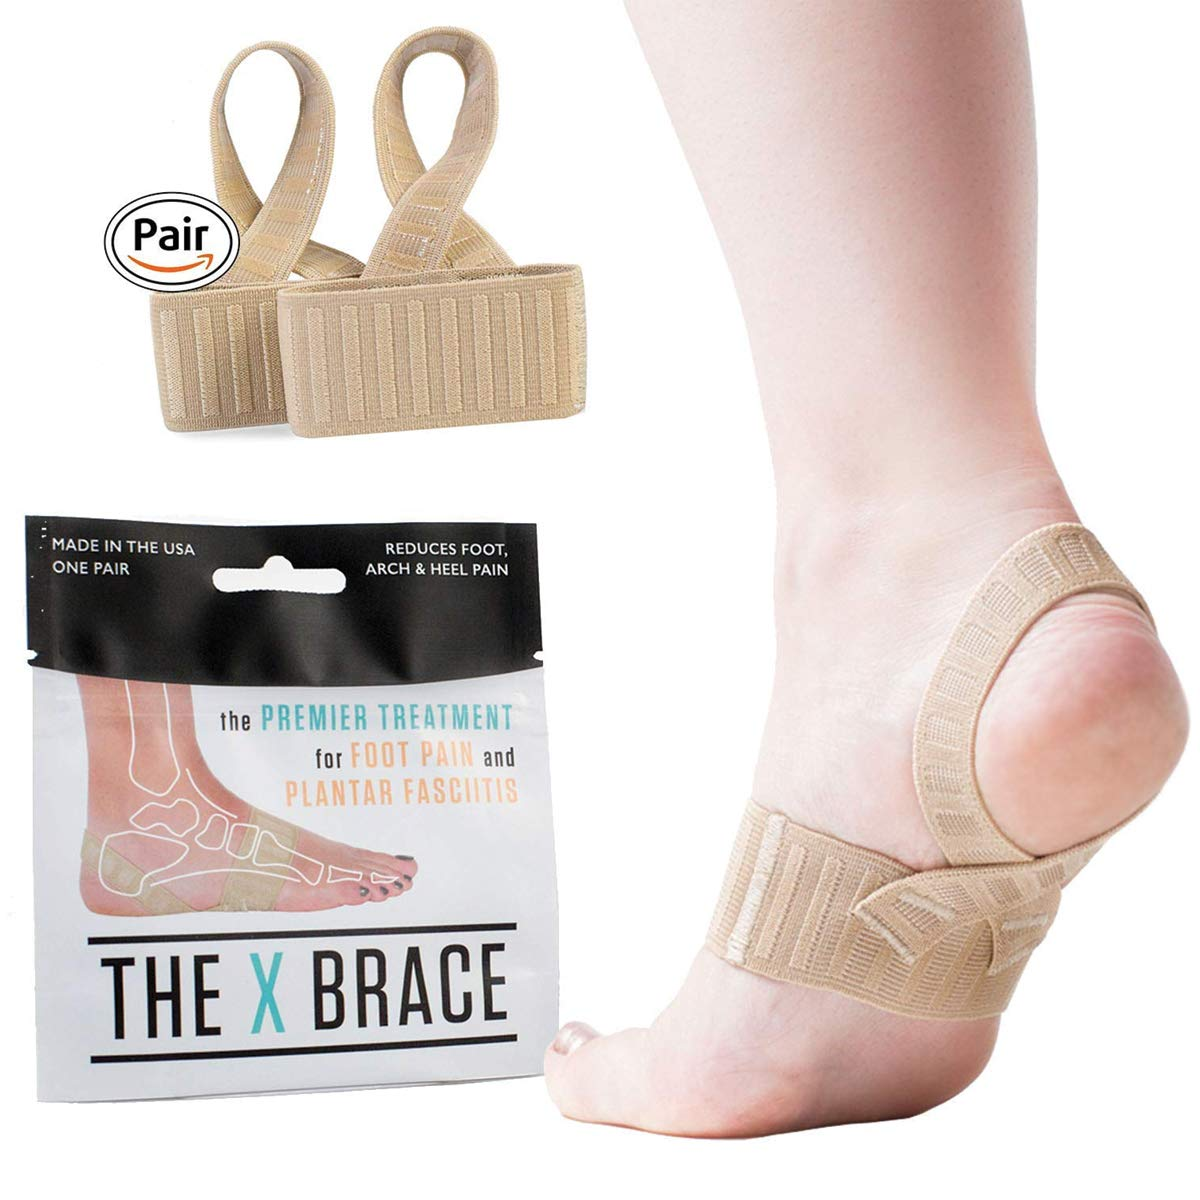 5ba55fcf67 The Original X Brace - Arch Support Brace and Compression for Plantar  Fasciitis, Sever's Disease